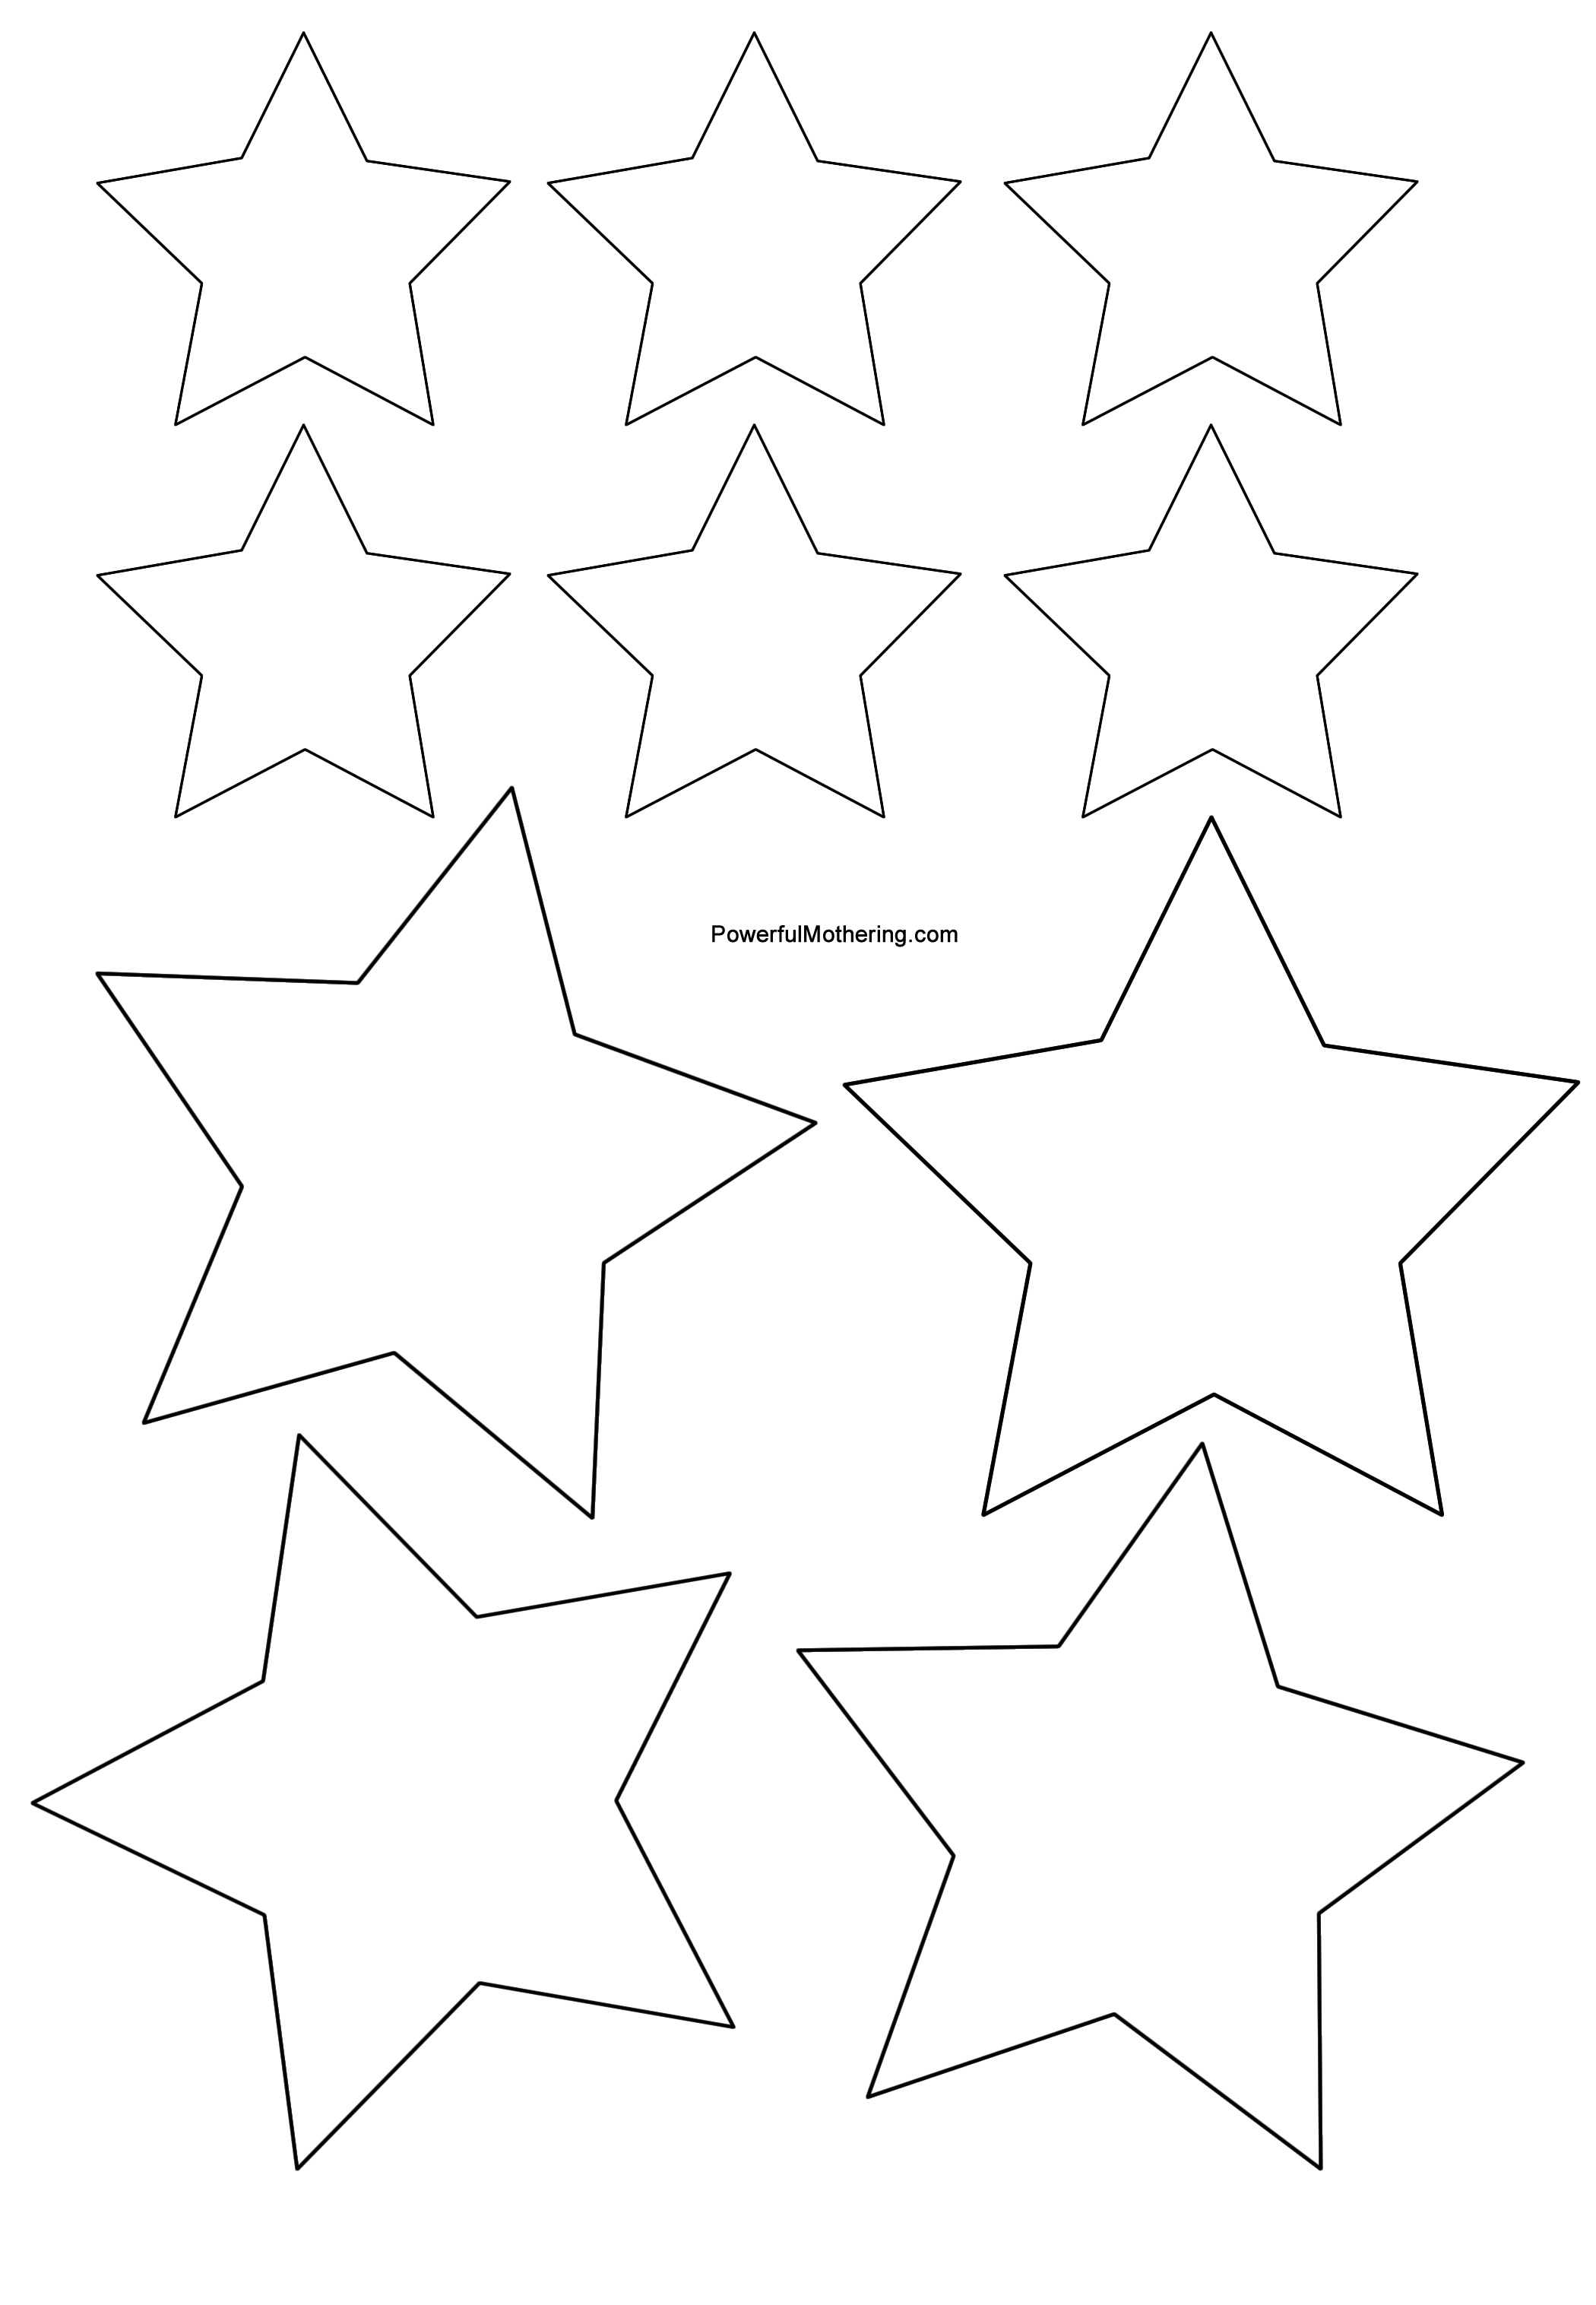 4 Images of Star Cutouts Printable